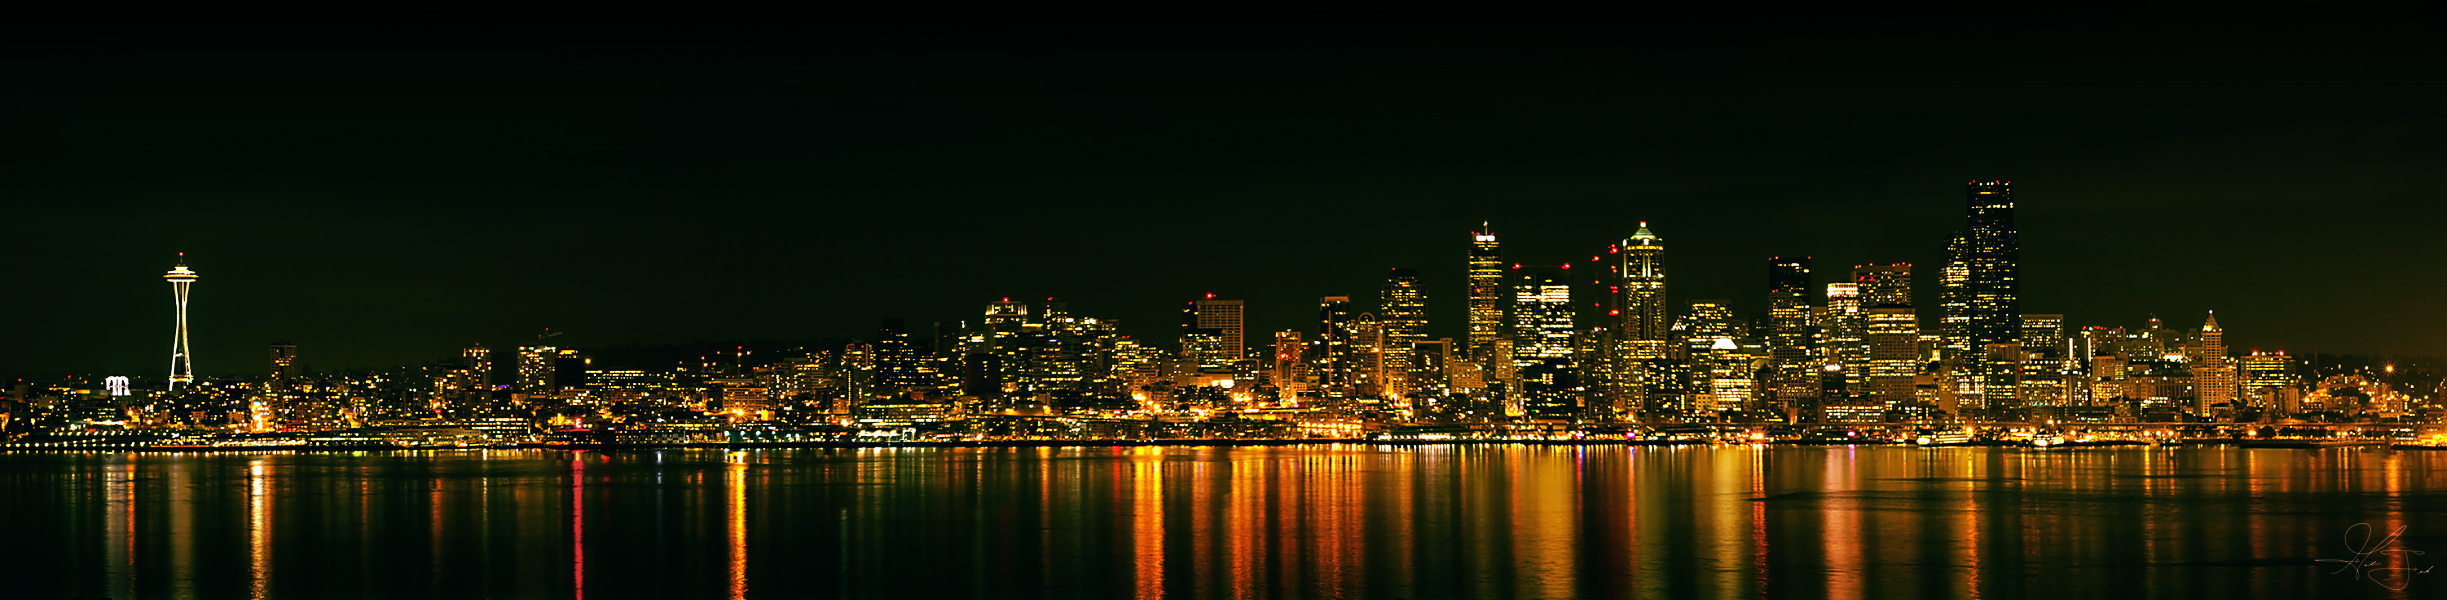 seattle panoramic 1 by photoboy1002001 on deviantart seattle skyline by thatfunk on deviantart 669